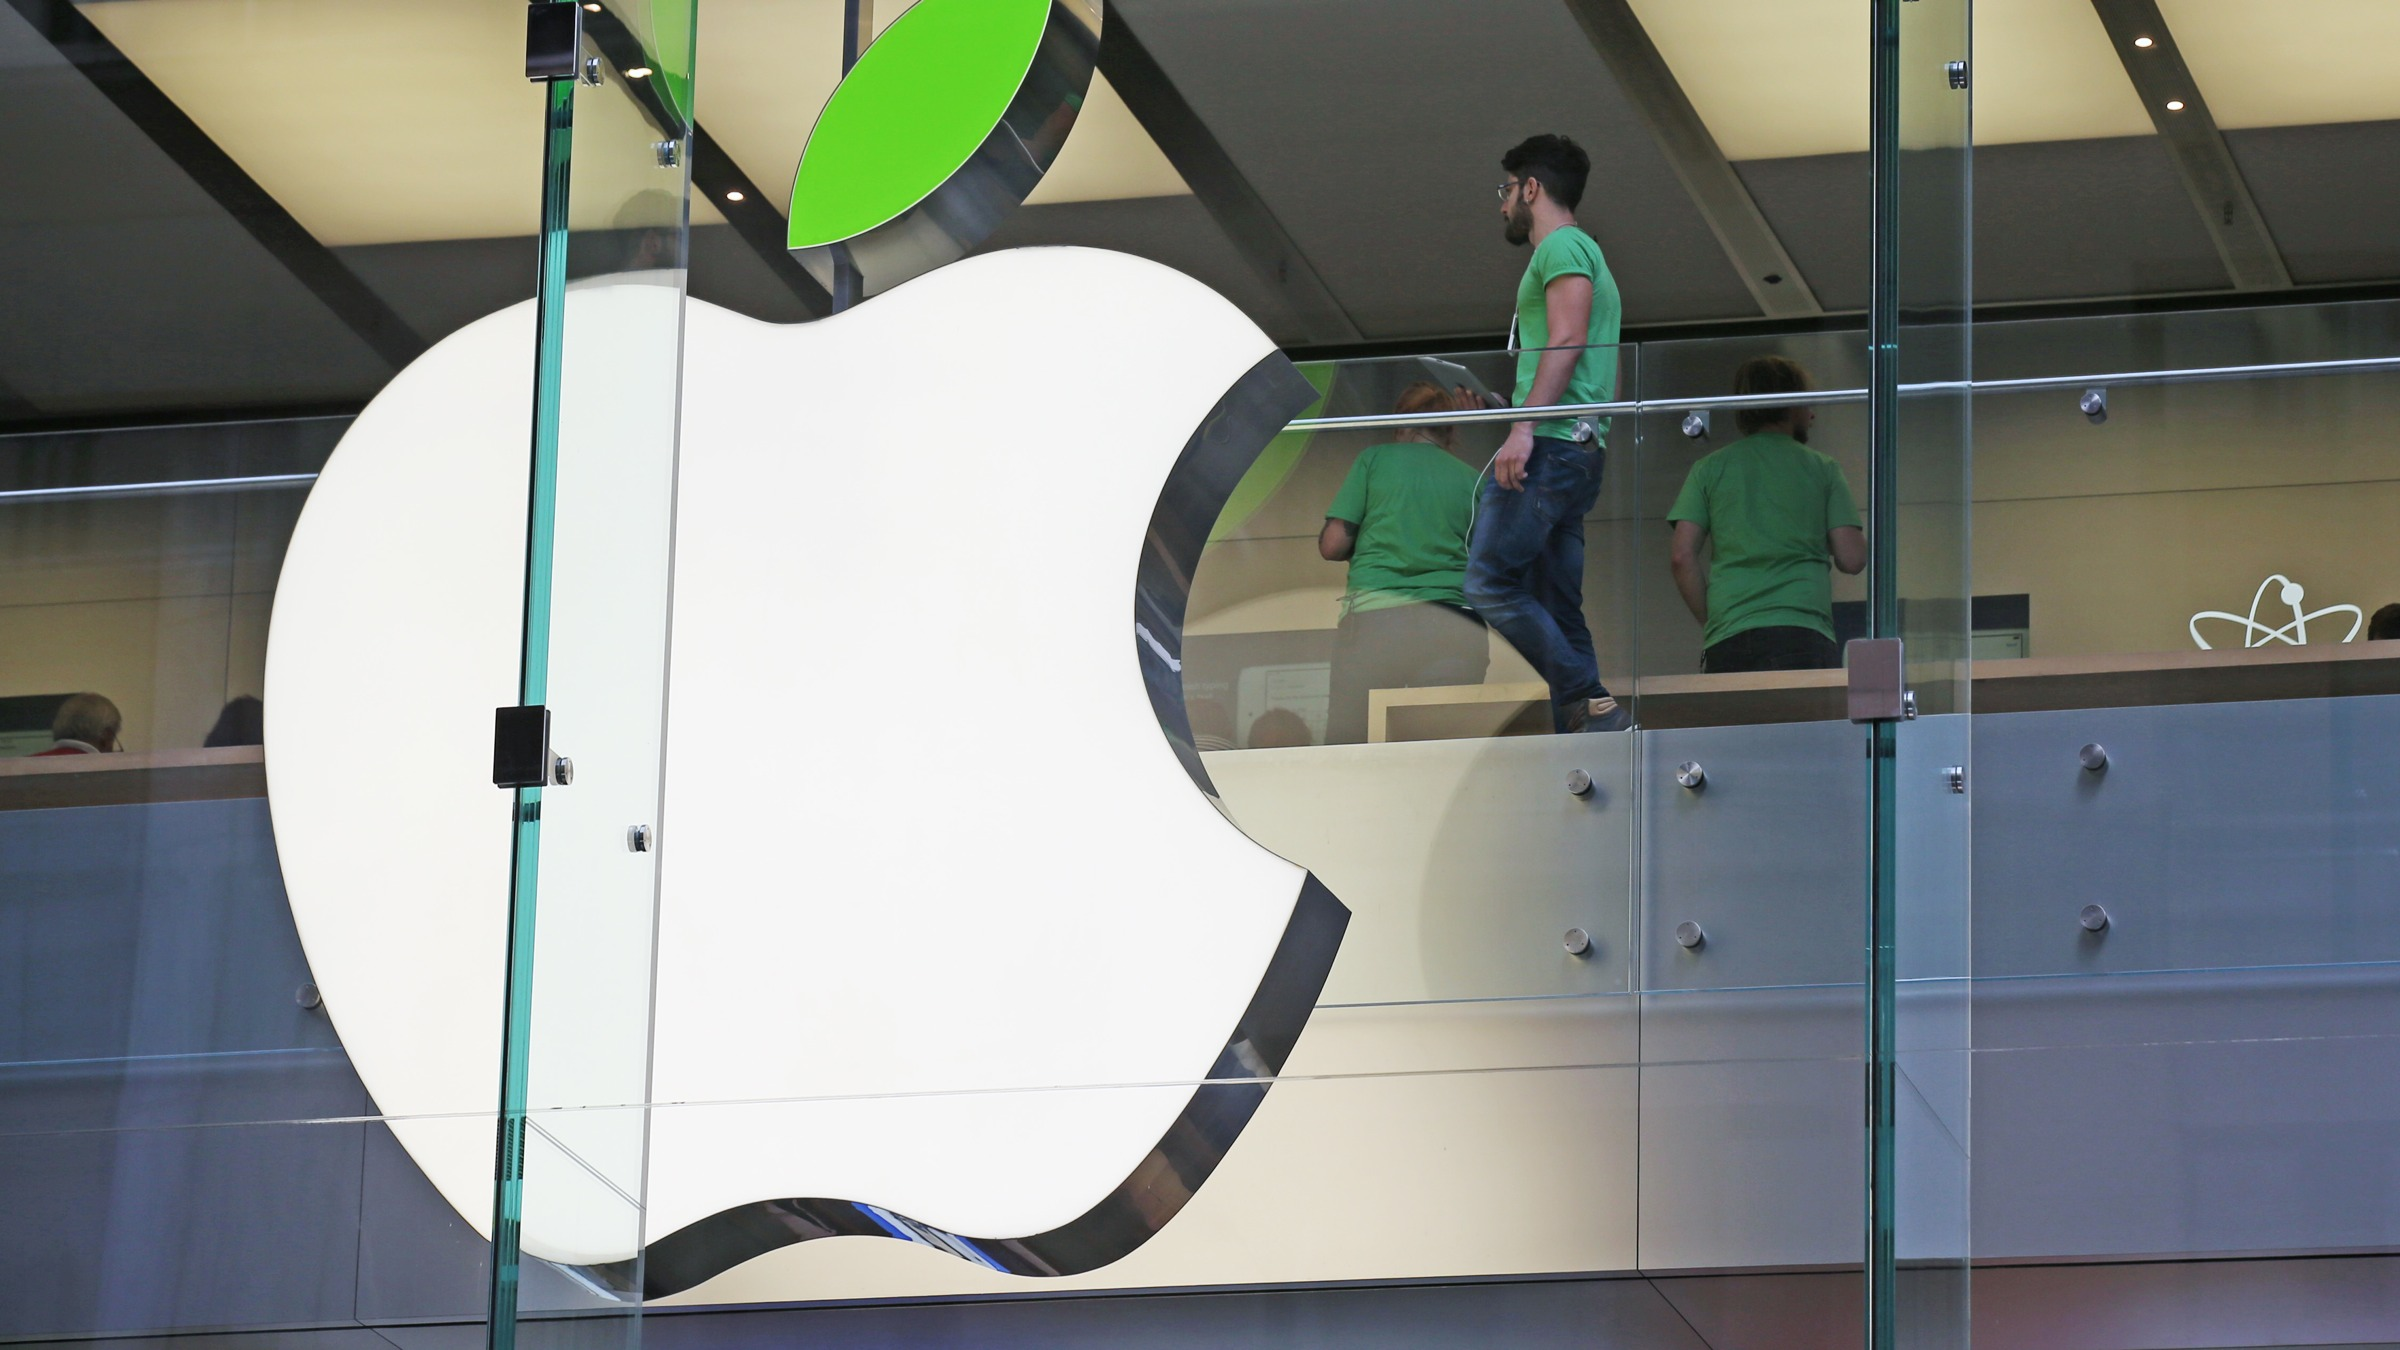 Employees wear green shirts near Apple's familiar logo displayed with a green leaf at the Apple Store timed to coincide with Tuesday's annual celebration of Earth Day in Sydney, Tuesday, April 22, 2014. Apple is offering free recycling of all its used products and vowing to power all of its stores, offices and data centers with renewable energy to reduce the pollution caused by its devices and online services. (AP Photo/Rick Rycroft)